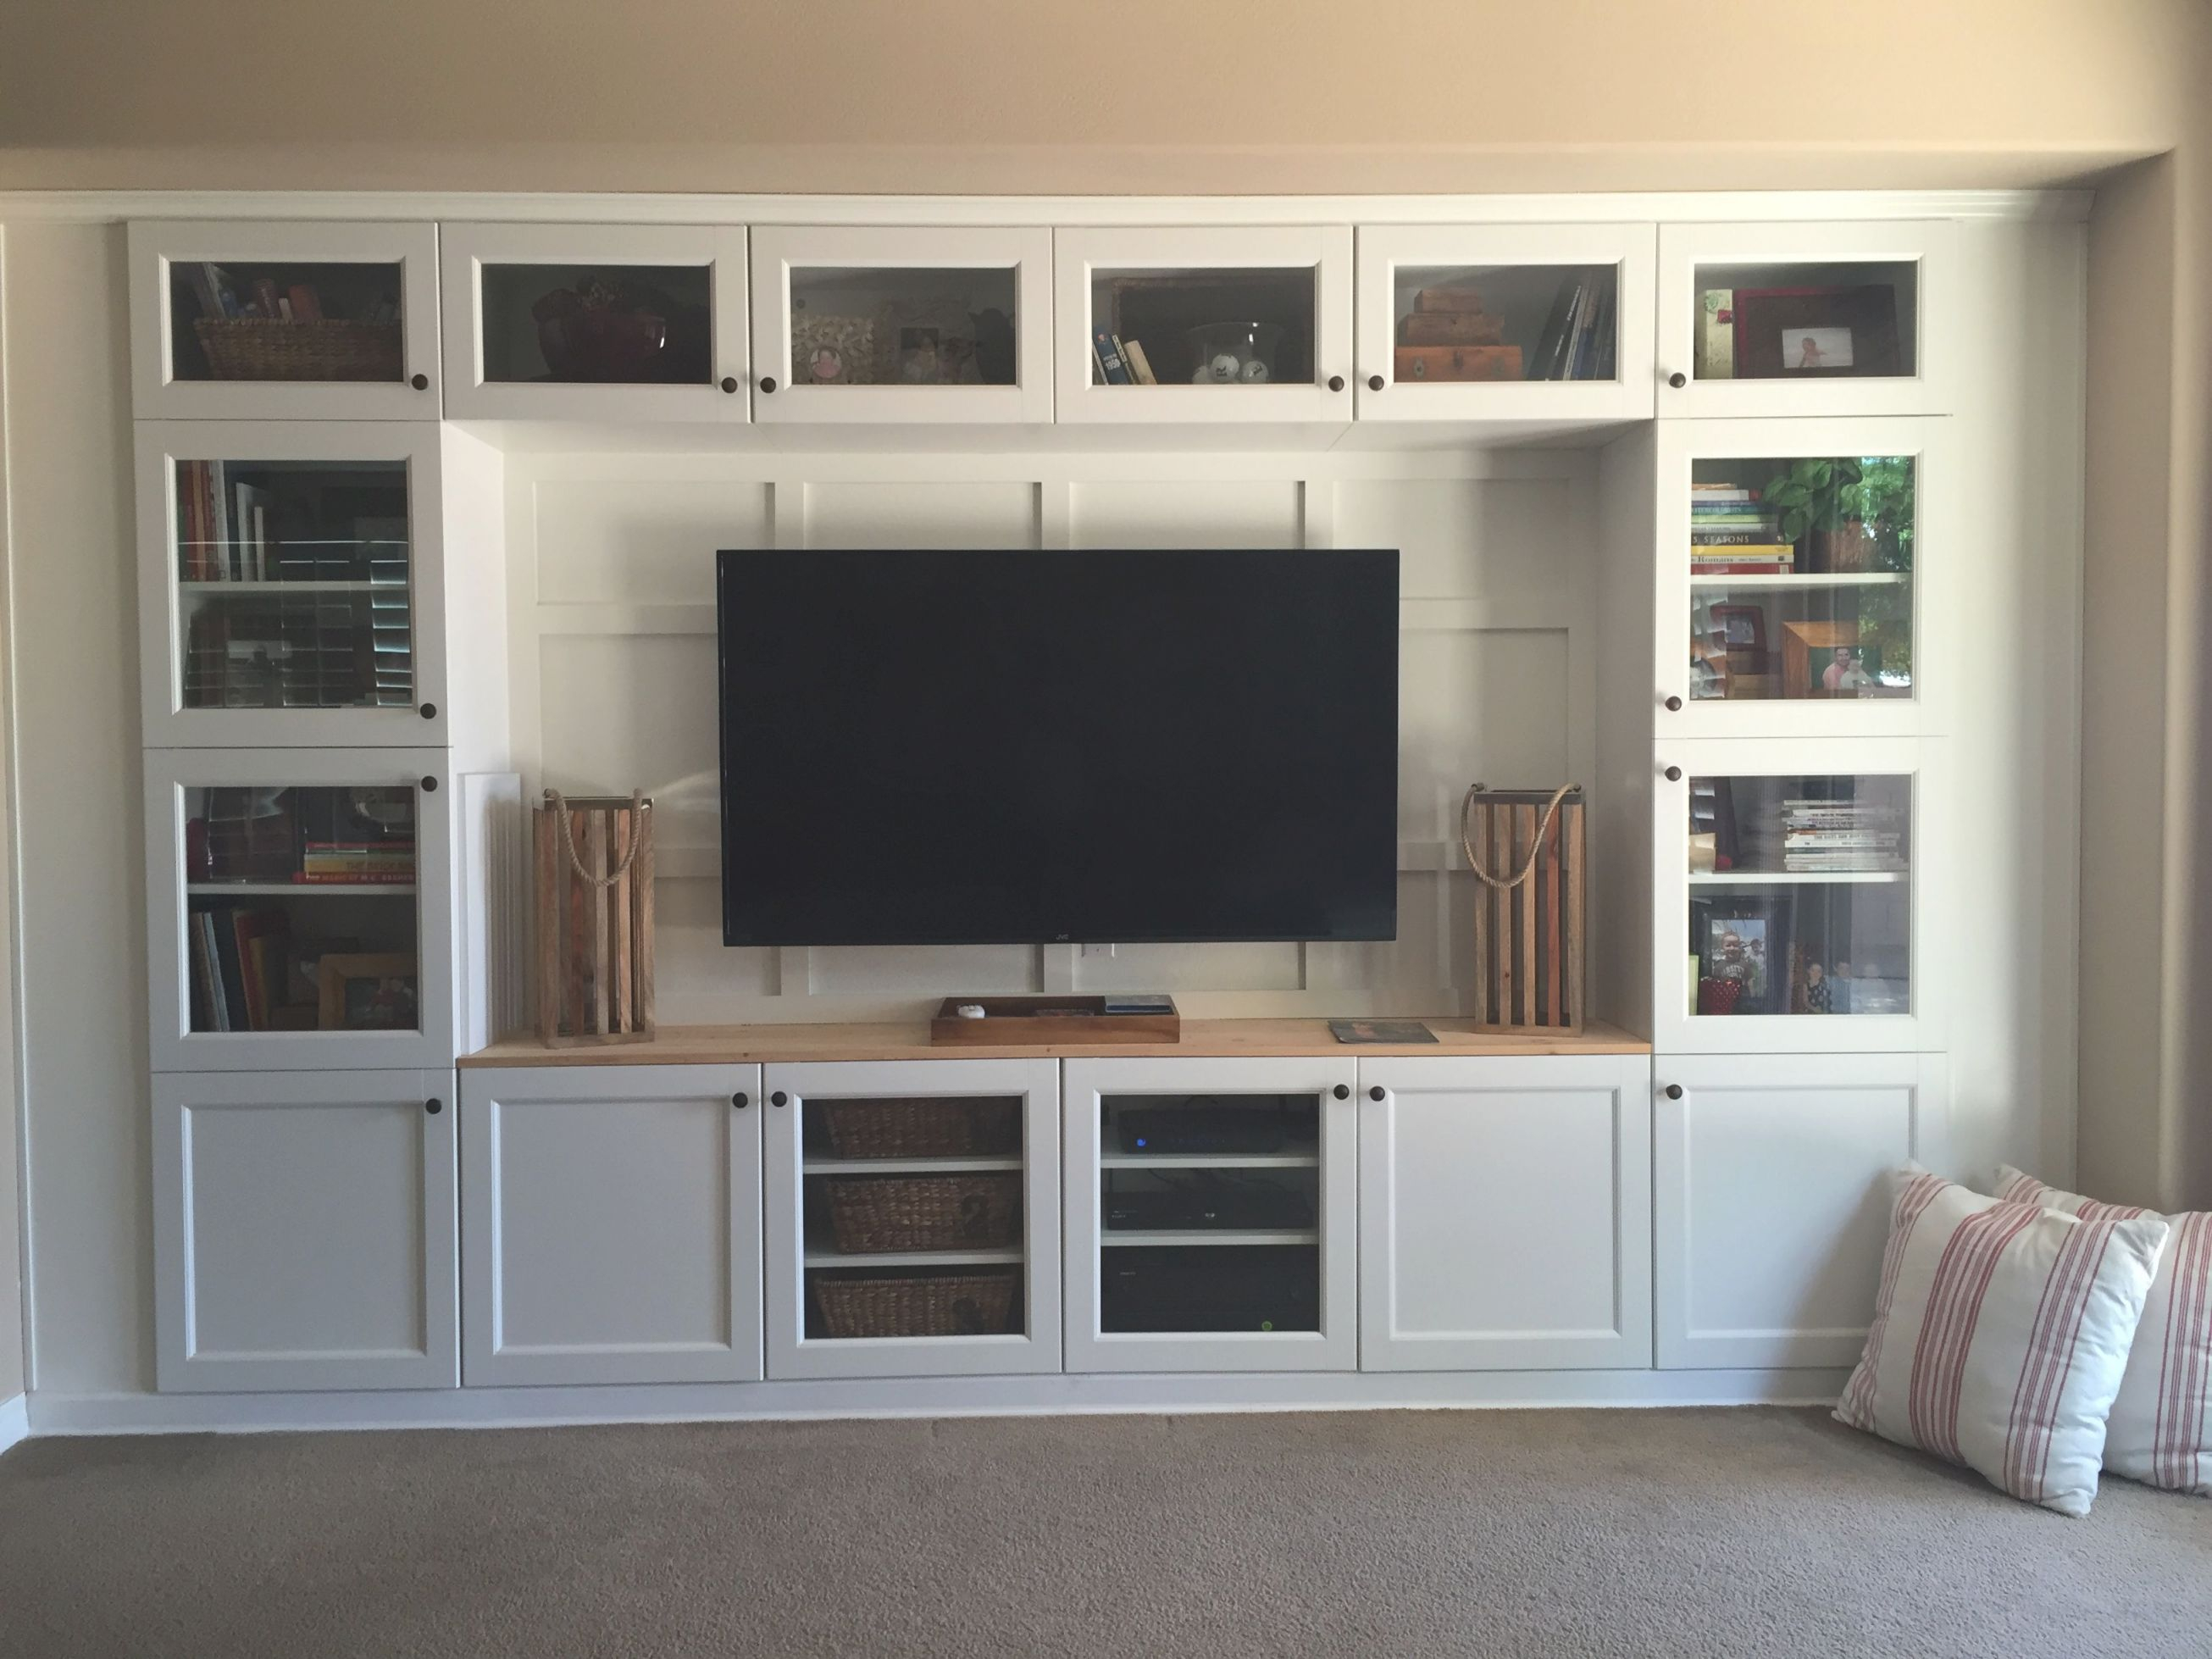 Built In Media Using Ikea Cabinets And Lumber. | Living Room inside Ikea Wall Cabinets Living Room